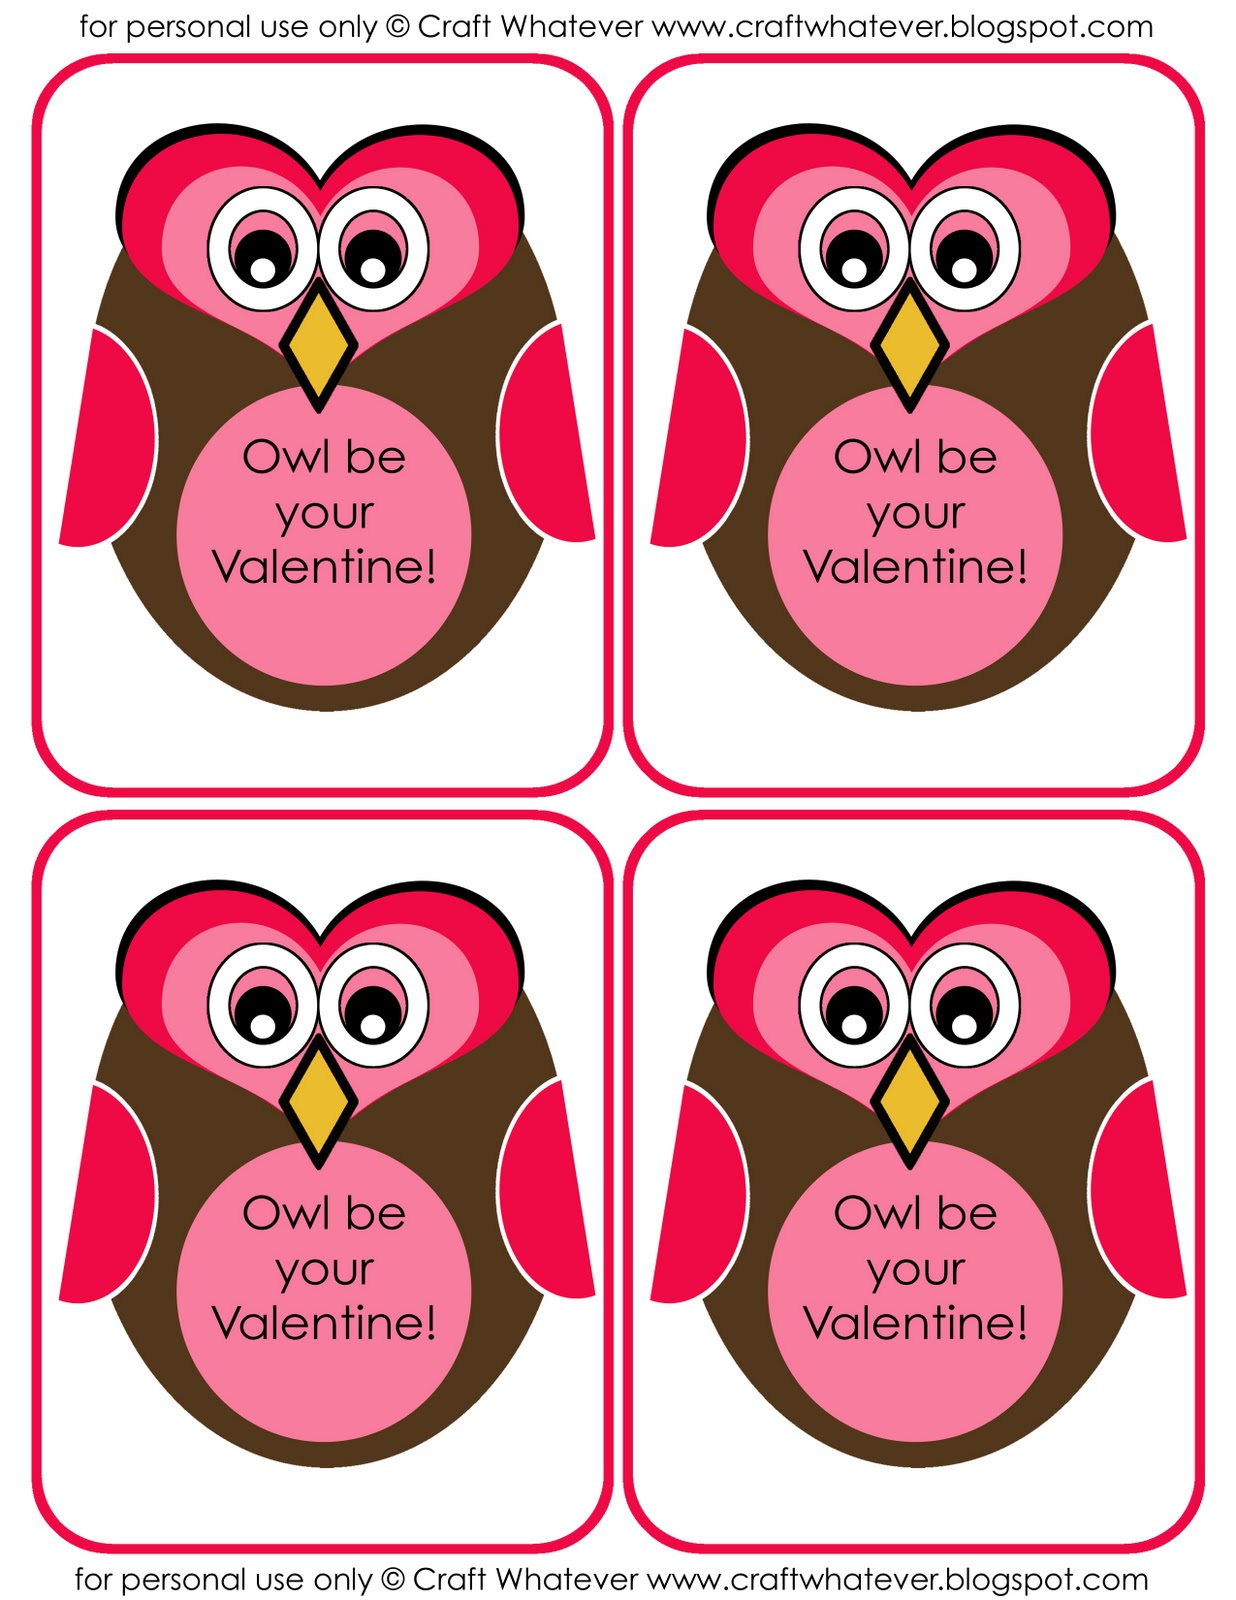 Craft Whatever Free Valentine S Day Printables